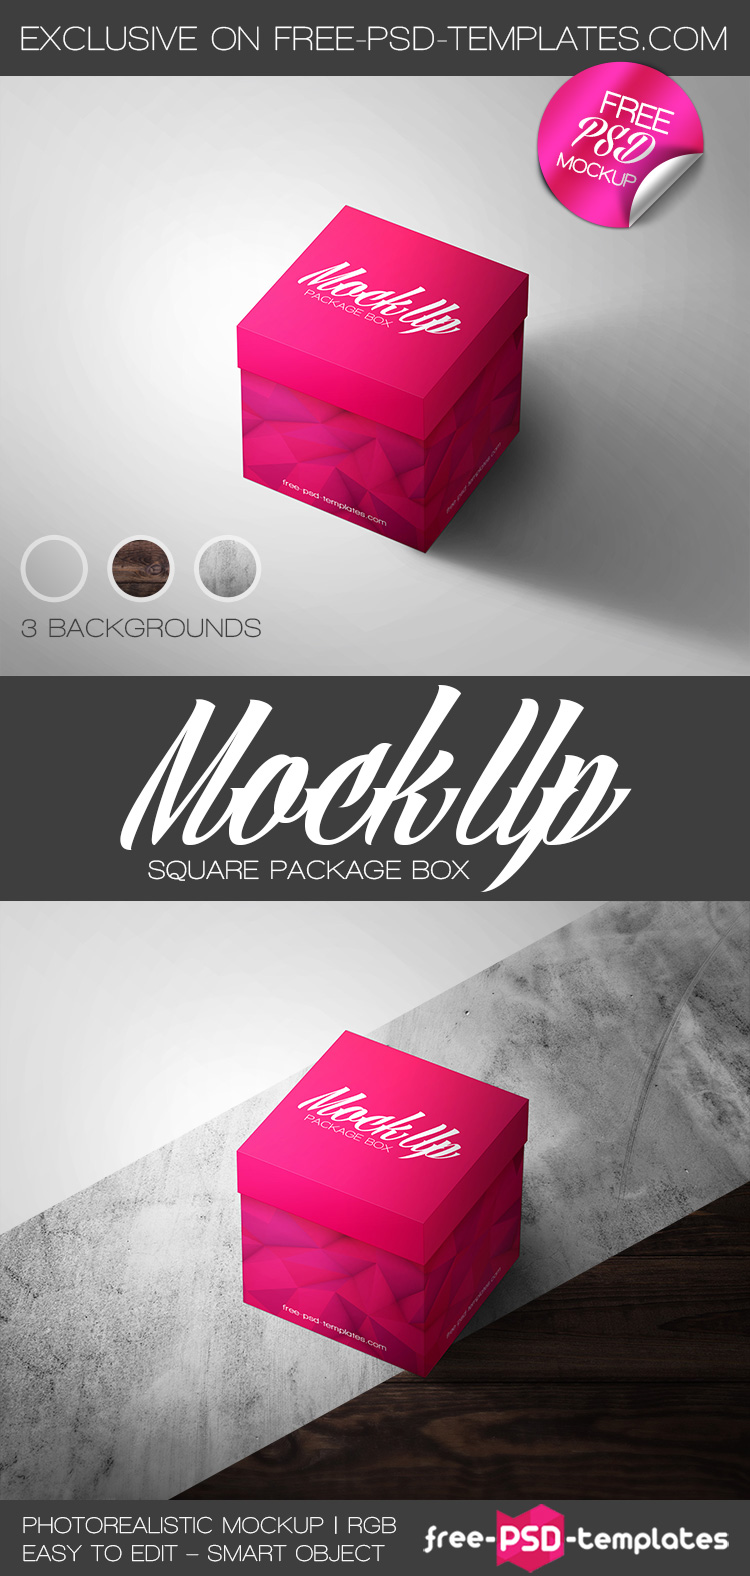 Download Free Square Package Box Mock-up in PSD | Free PSD Templates